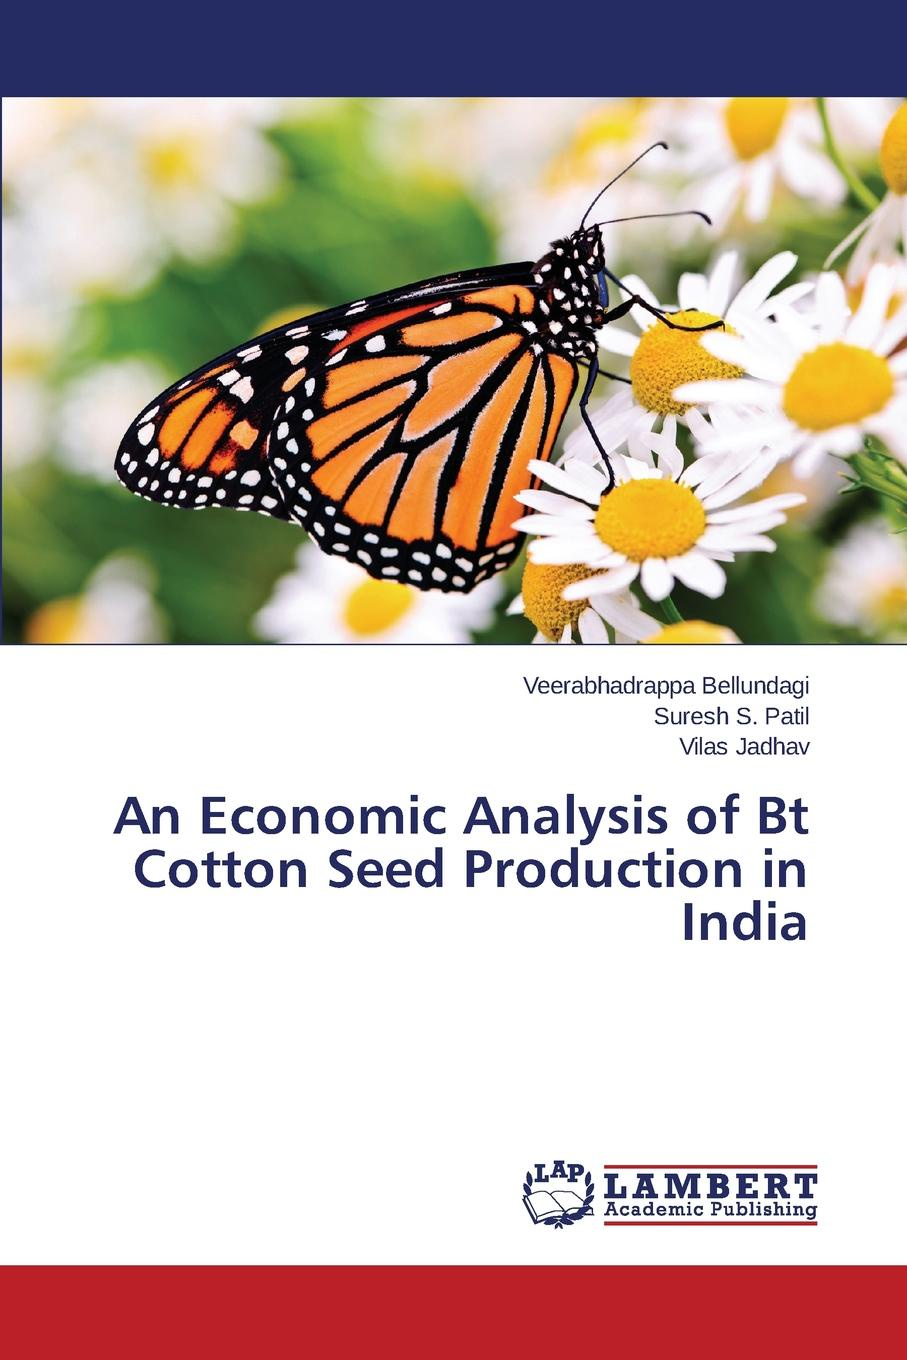 Bellundagi Veerabhadrappa, S. Patil Suresh, Jadhav Vilas An Economic Analysis of Bt Cotton Seed Production in India the introduction of the european advanced technology lisida company production lx 245b for non insulated cable links